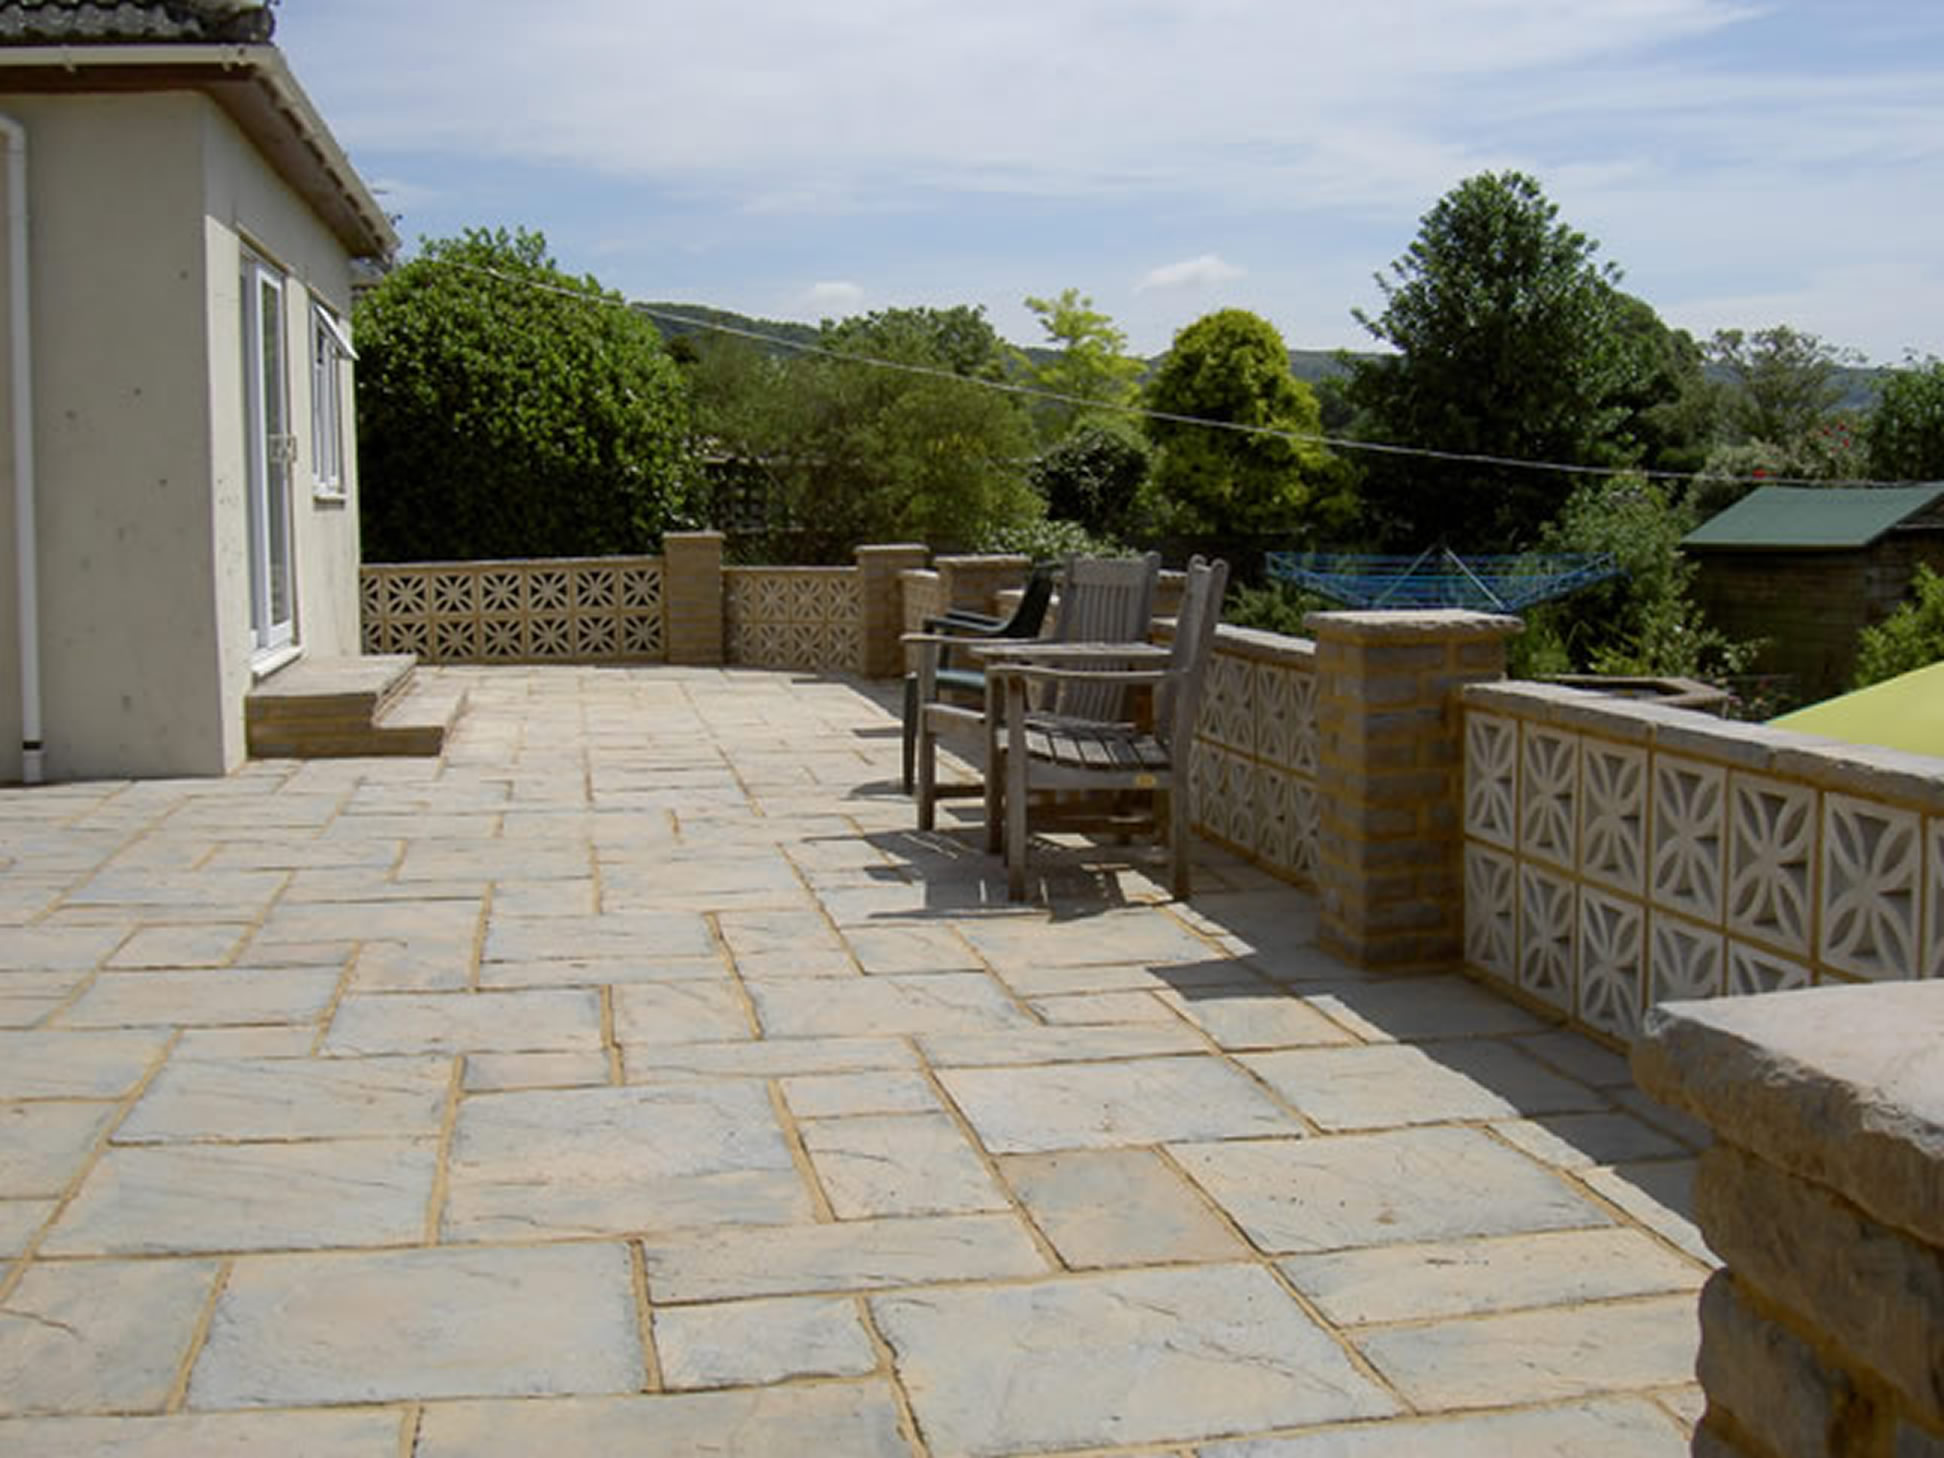 Garden-Patio-Paving-P01.jpg